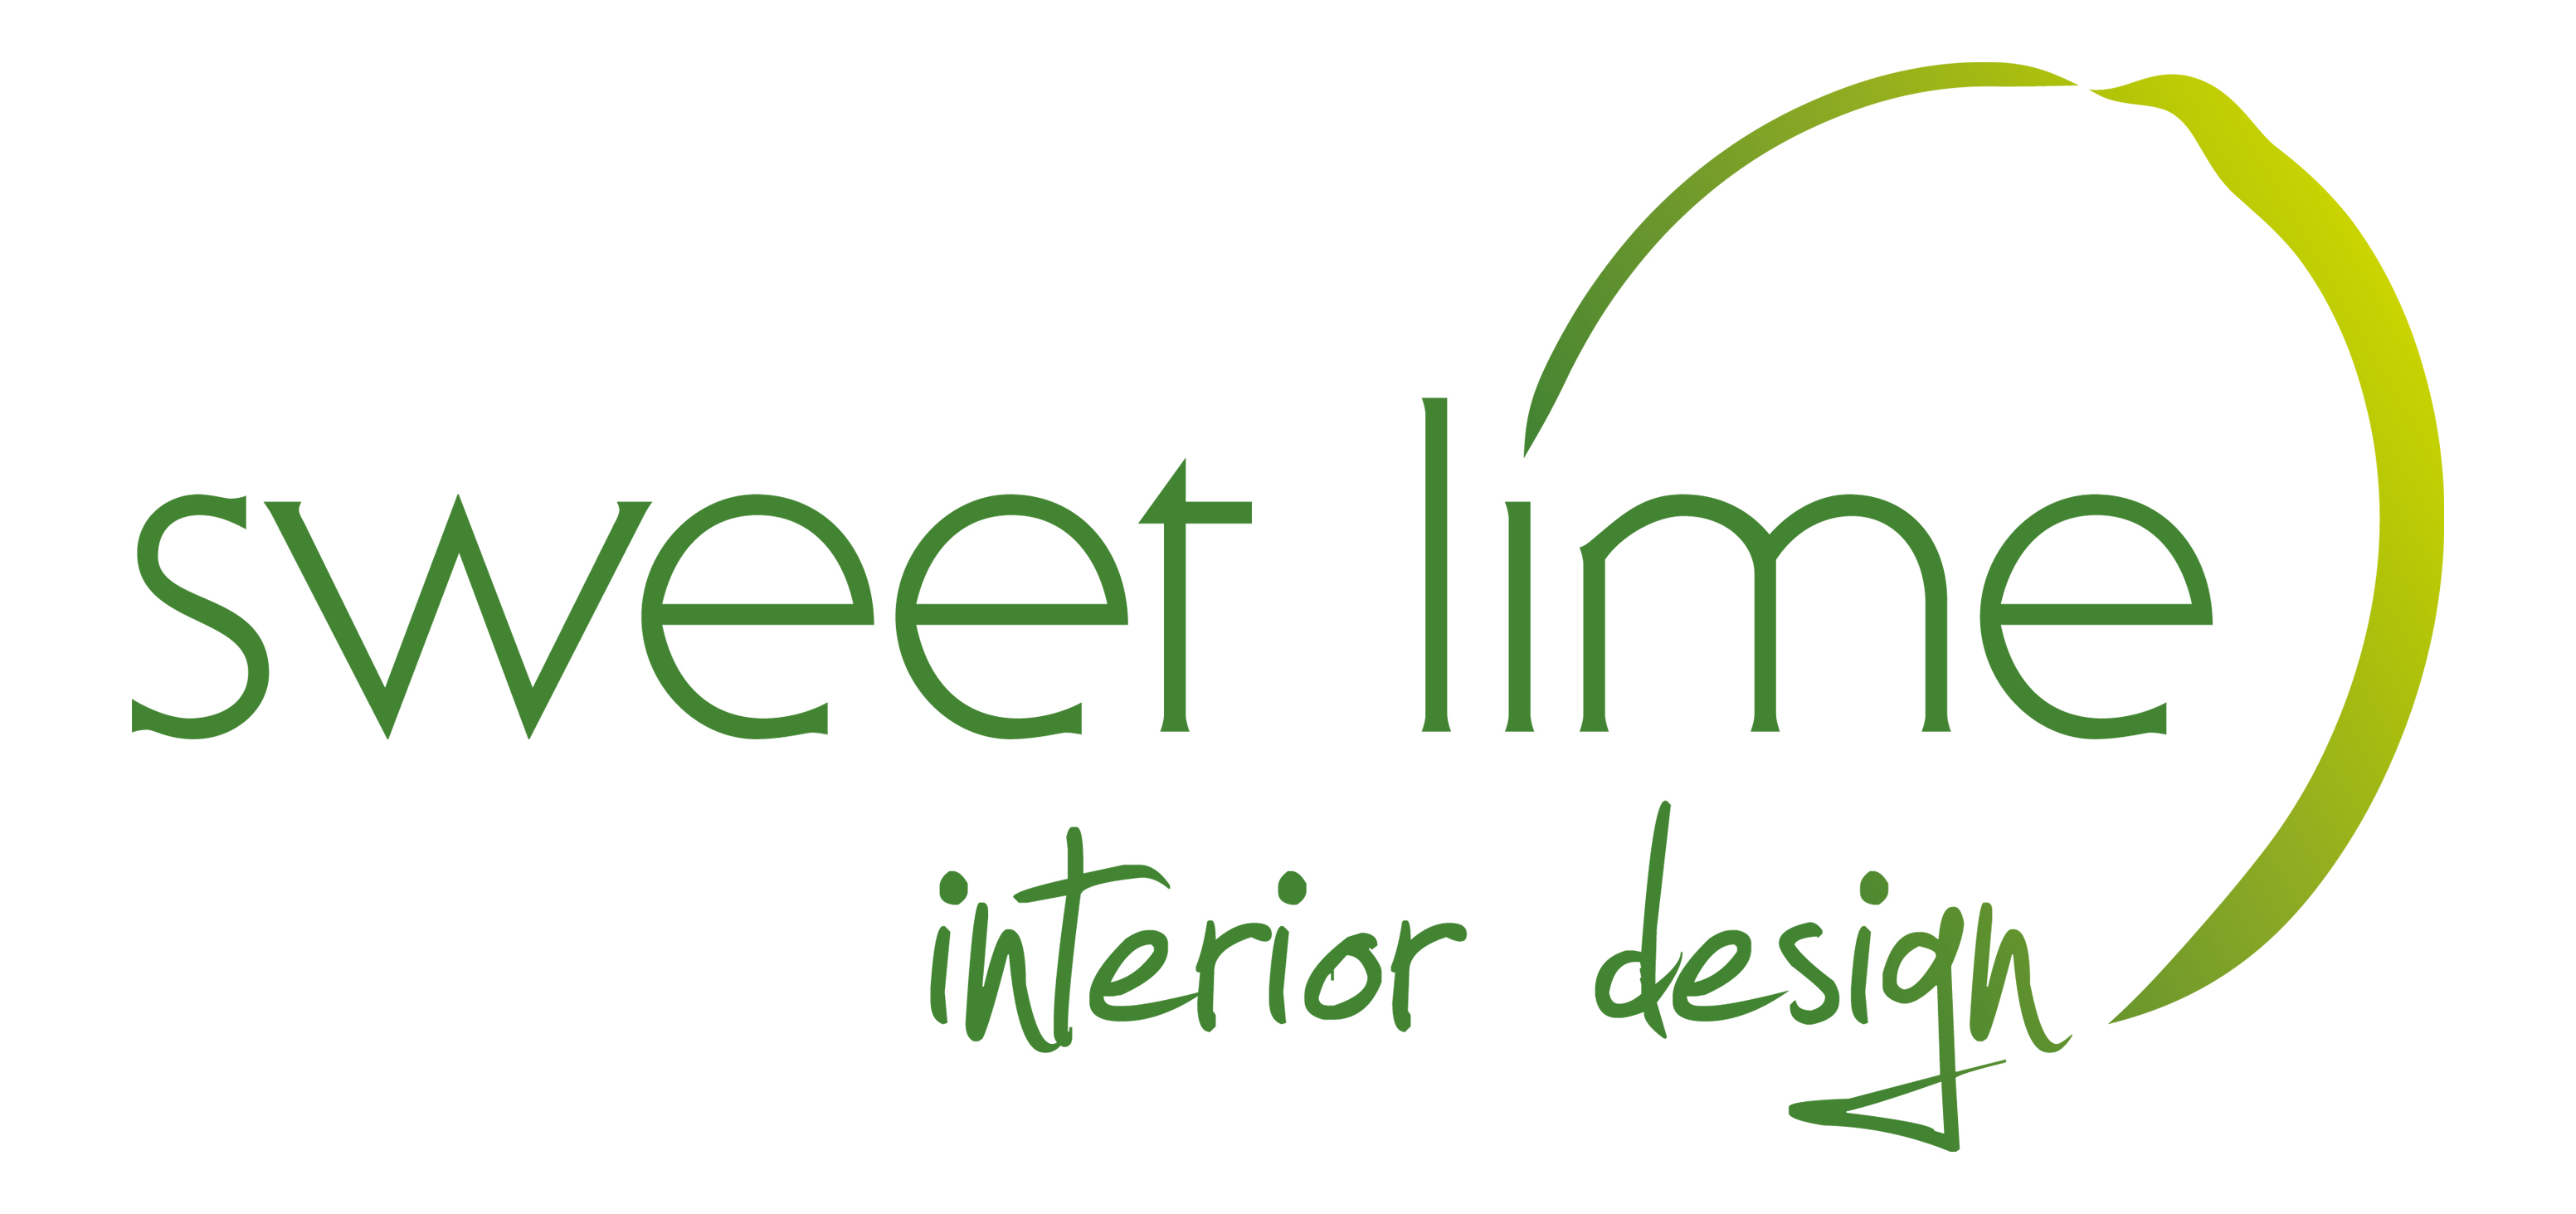 Interior design logo ideas for Home interiors logo